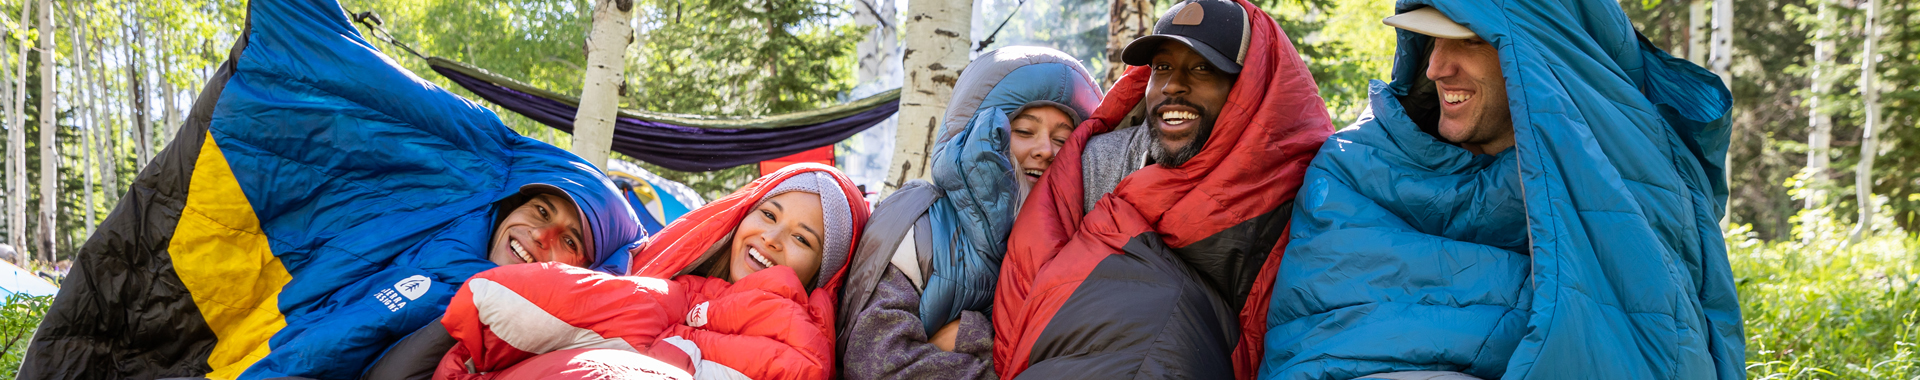 Group of friends wearing Sierra Designs sleeping bags on their heads